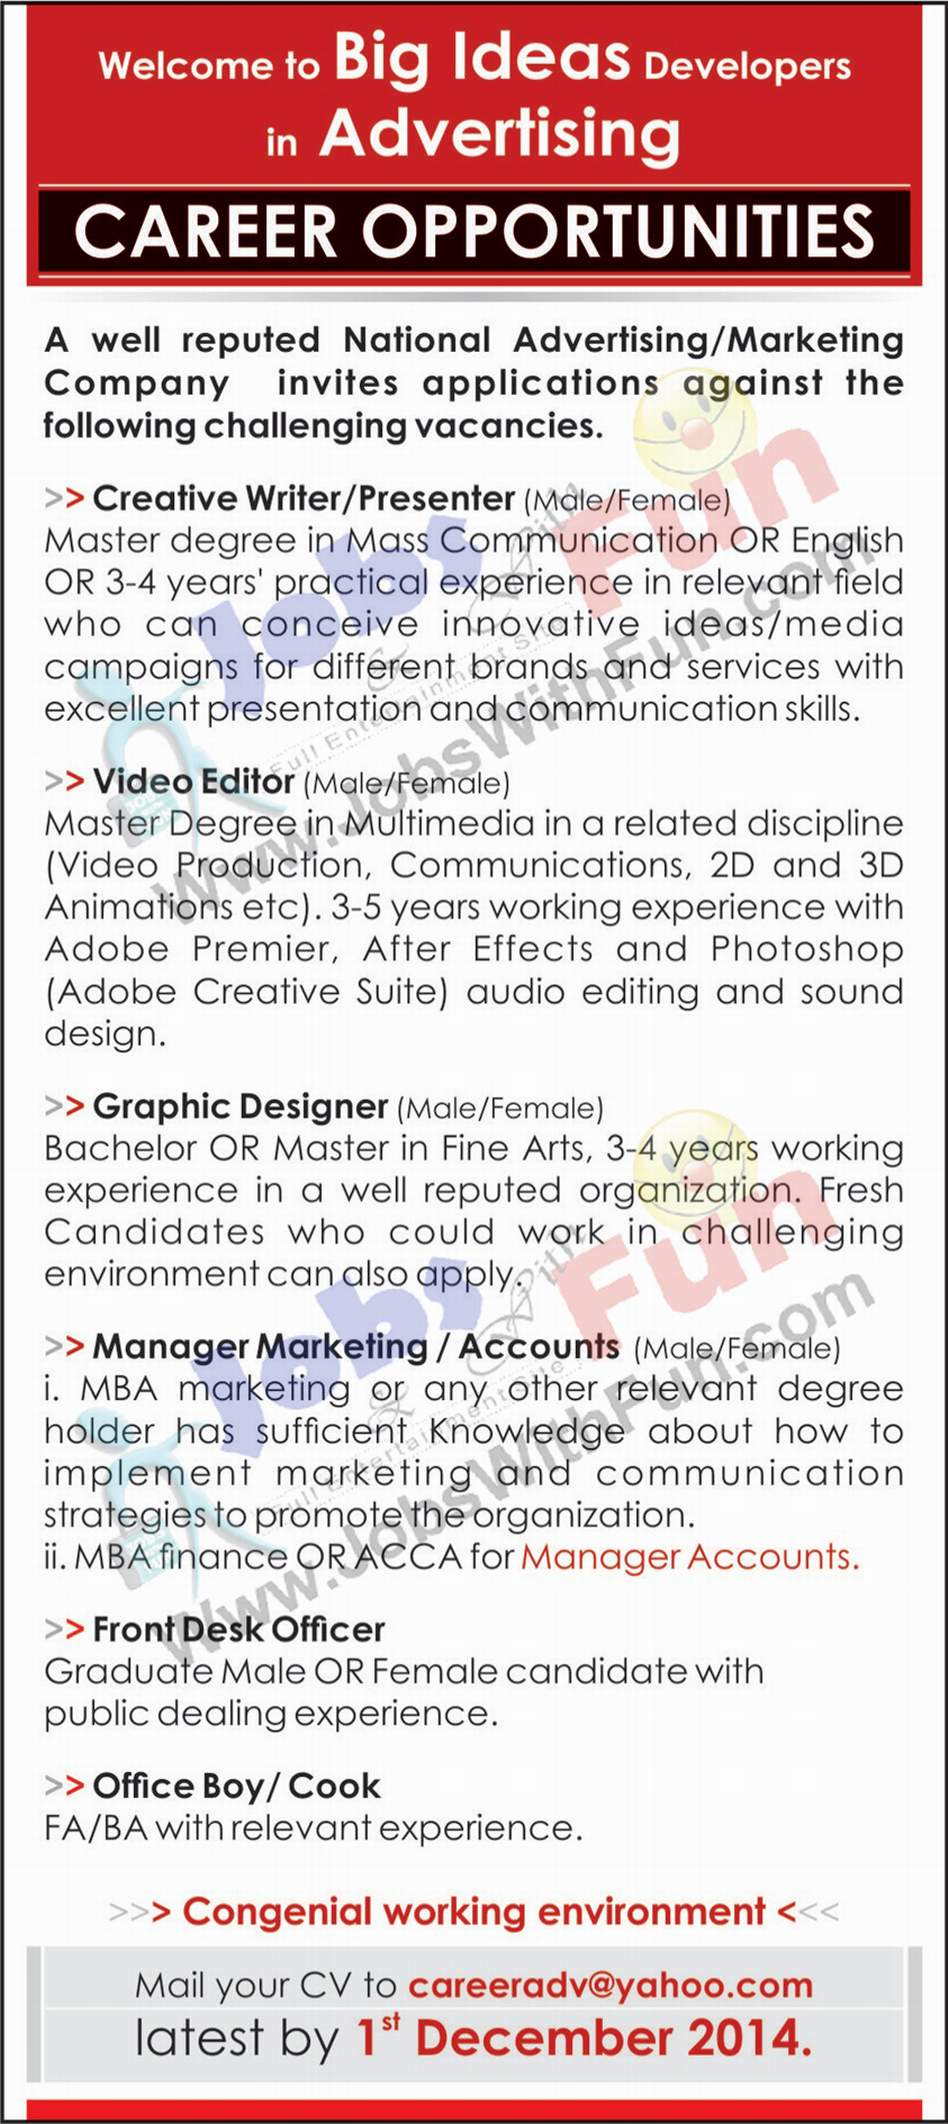 Job Opportunities Vacancies Career Opportunities In Advertising And Marketing Company Jobs